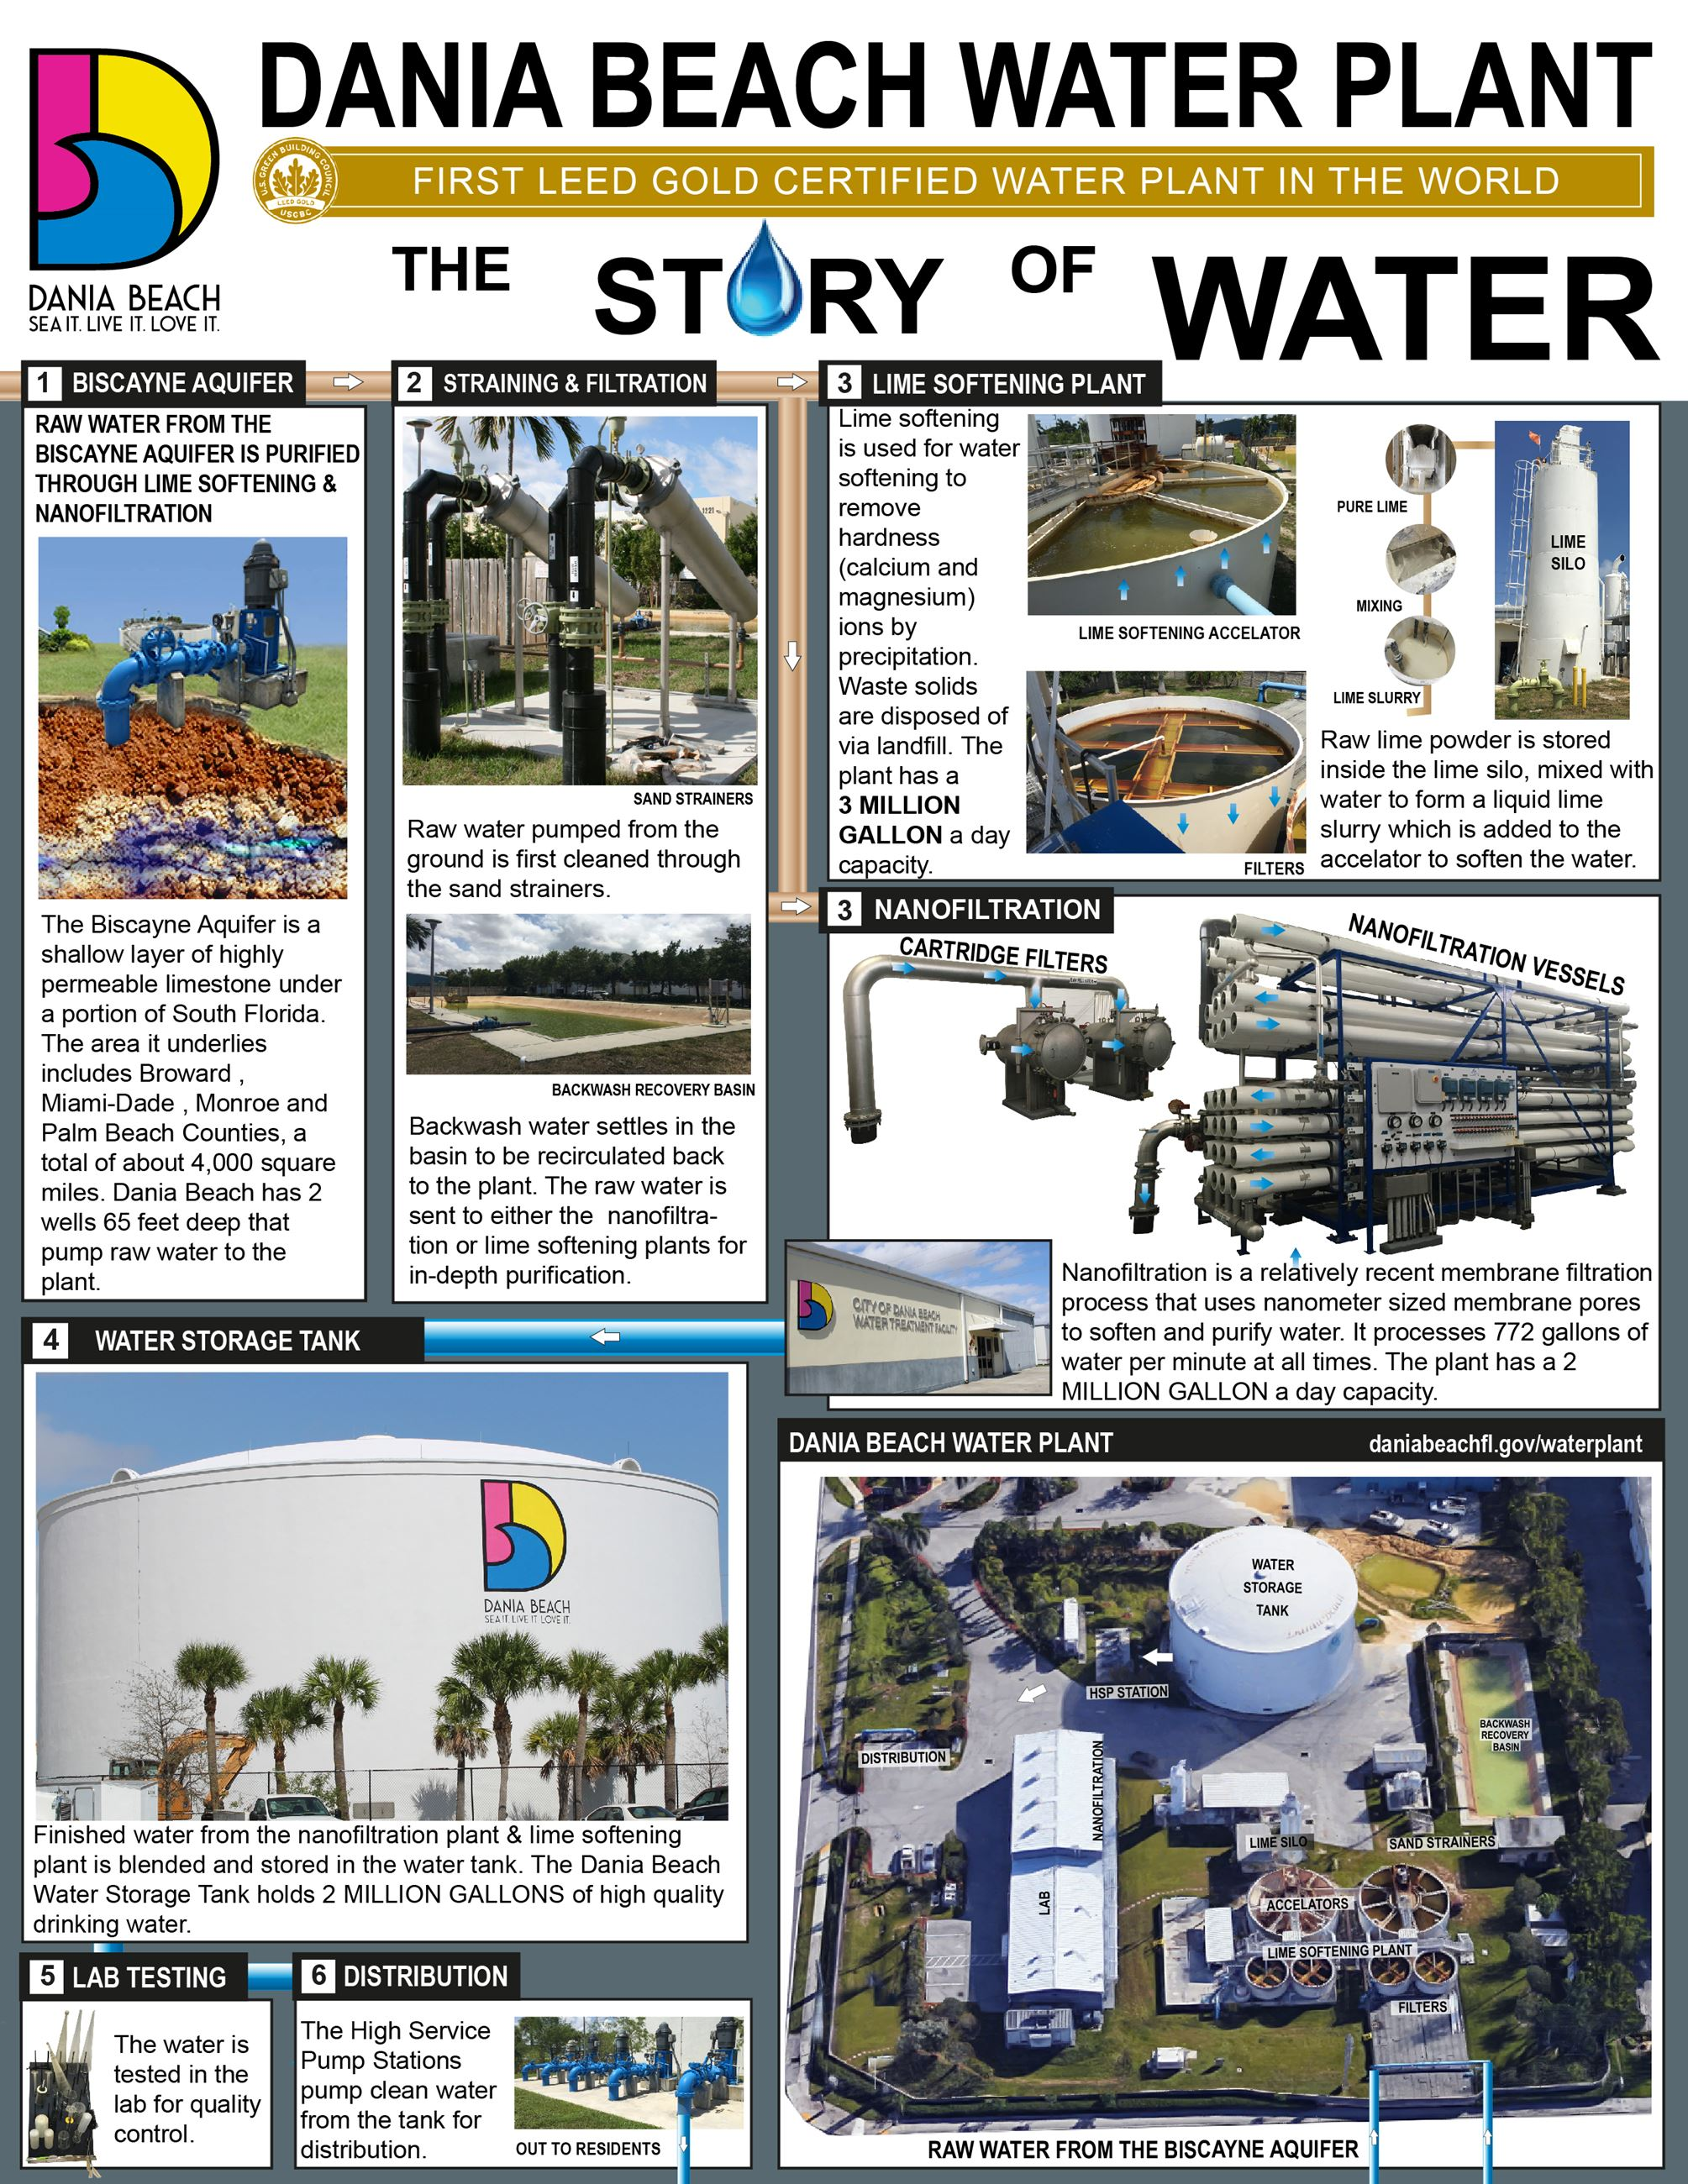 Dania Beach WaterPlant InfoGraphic - First LEED Gold waterplant in the world